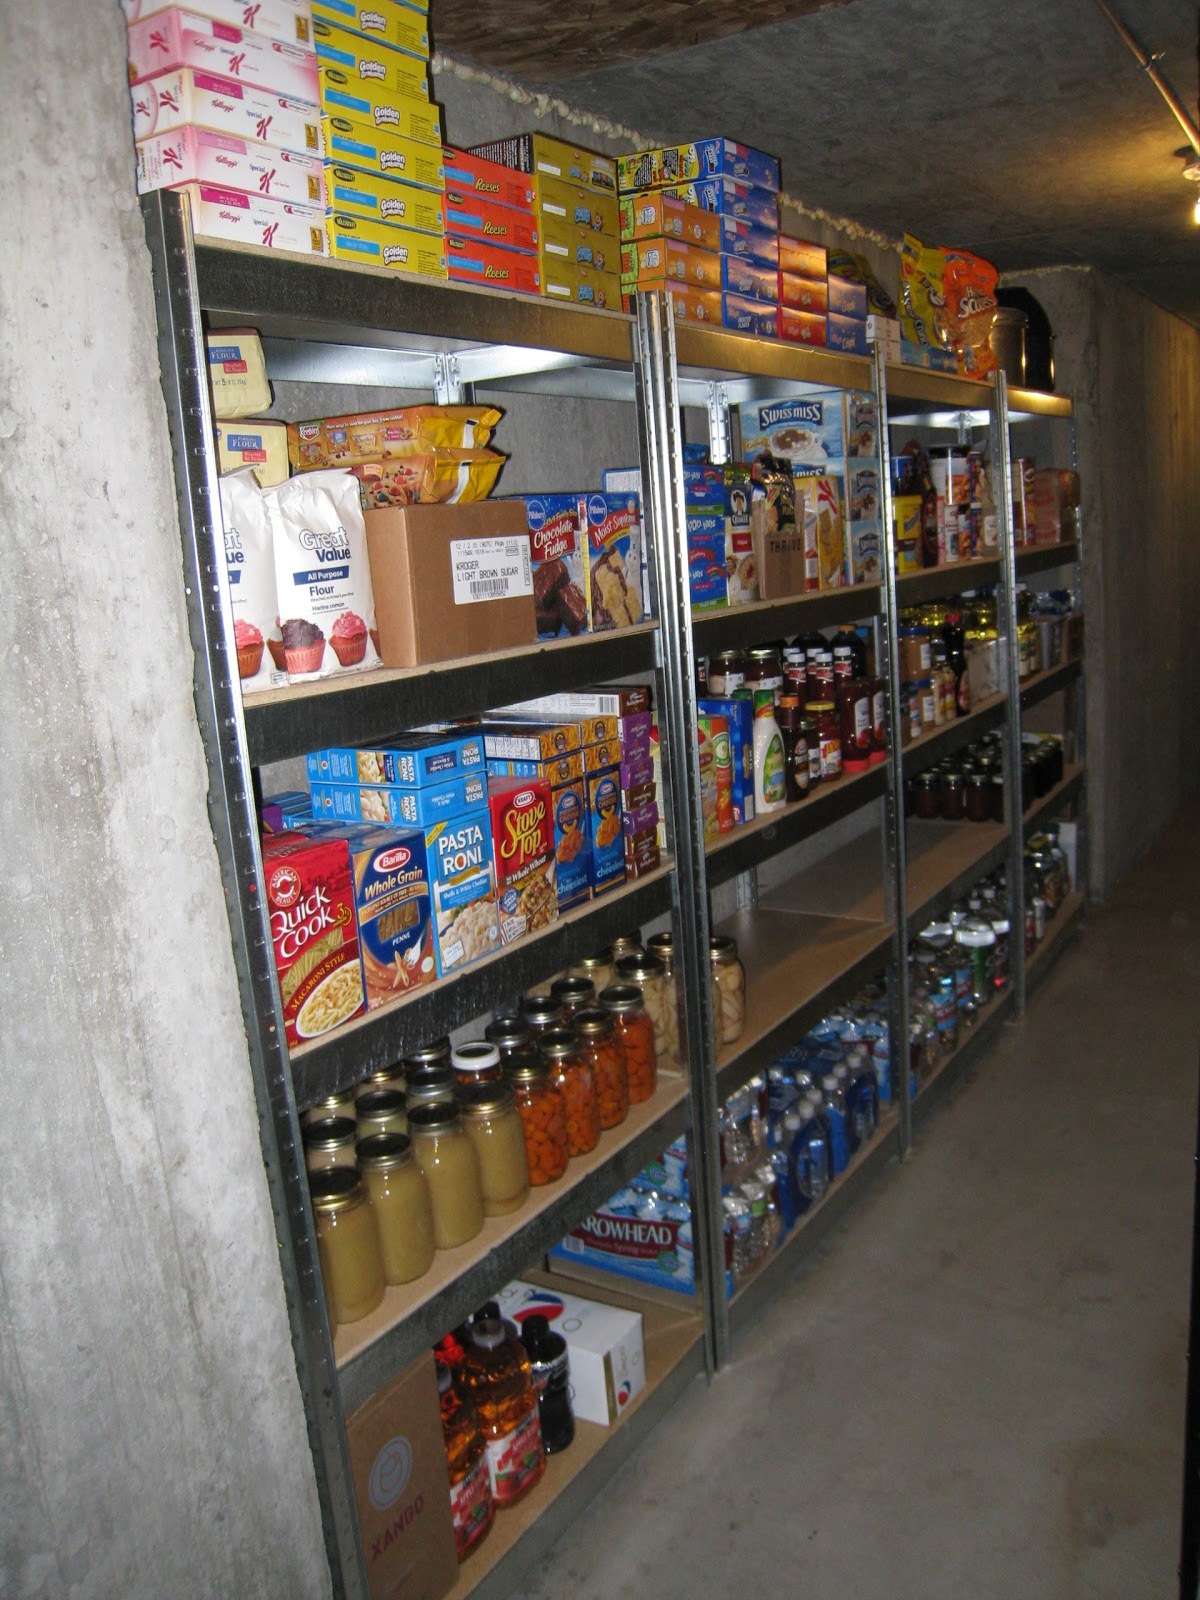 Cooking With My Food Storage Where Do I Put My Food Storage? Eu0027s Organized Food Storage : storage room organization  - Aquiesqueretaro.Com